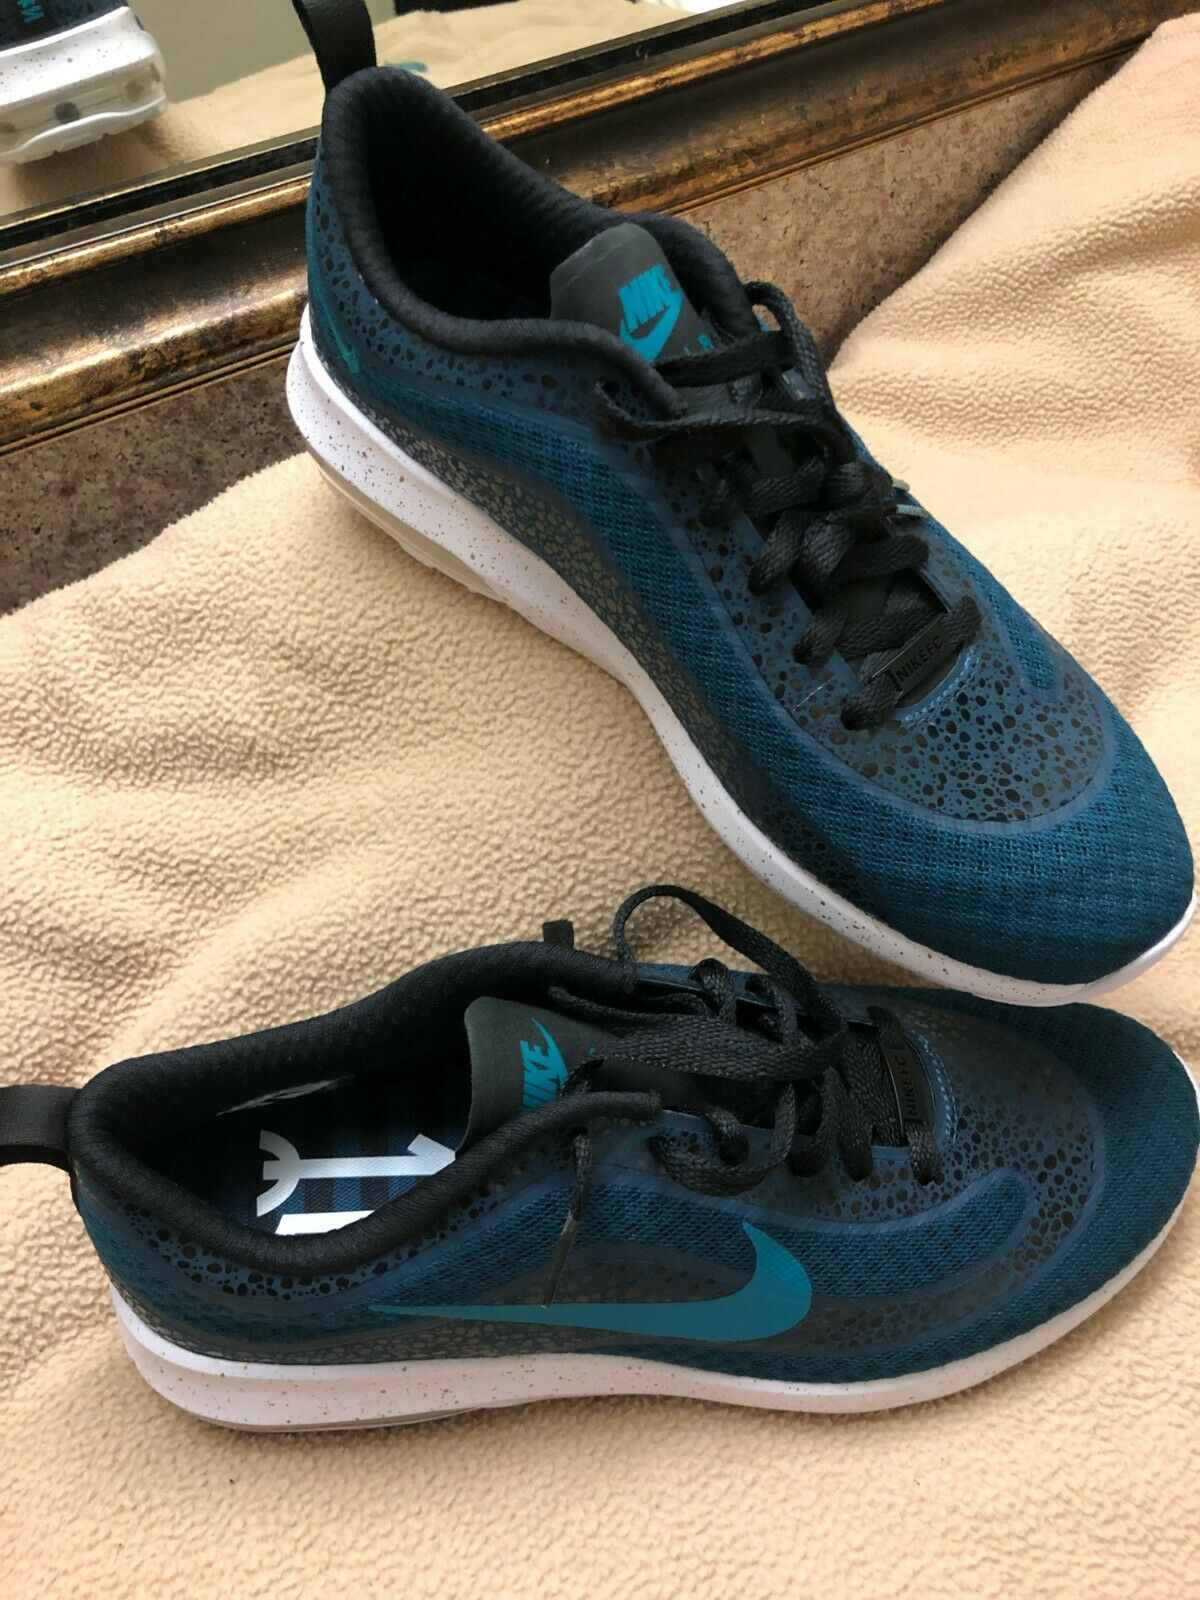 NIKE -AIR -MAX -MERCURIAL -98 -FC  -SHES -MIDNEIGHT -TURQUOISE -10 -8326884 -300 NIKE -AIR  per il commercio all'ingrosso